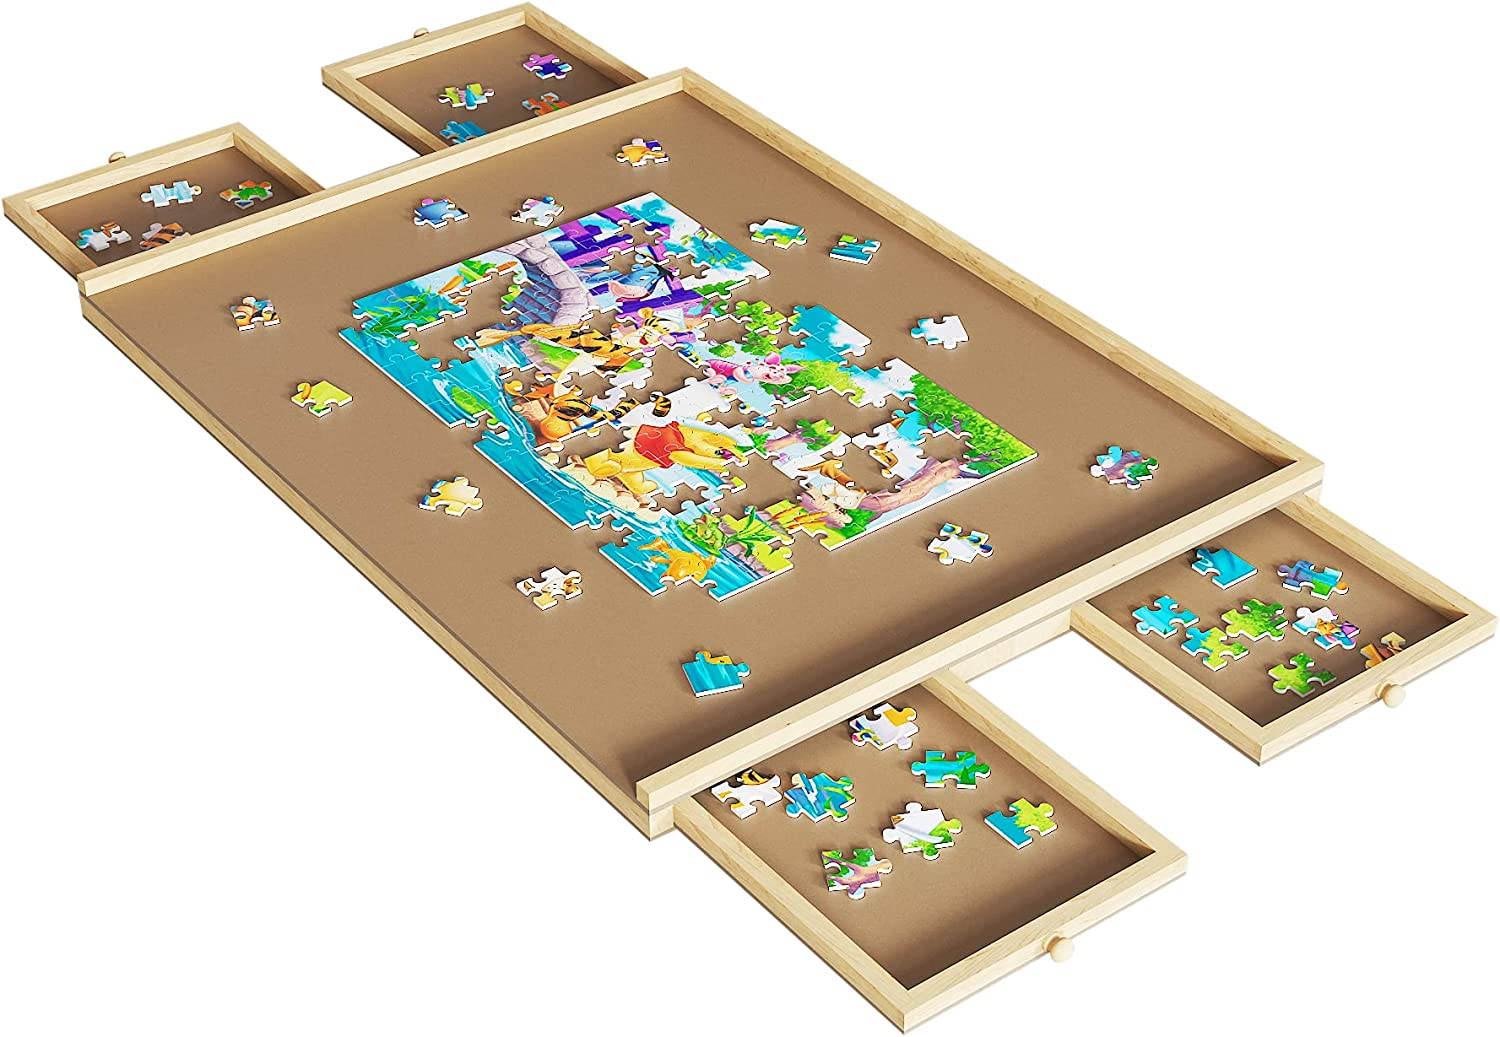 Upgraded Wooden Jacksonville Mall Puzzle Table 29 supreme x Inch Board Portable 21